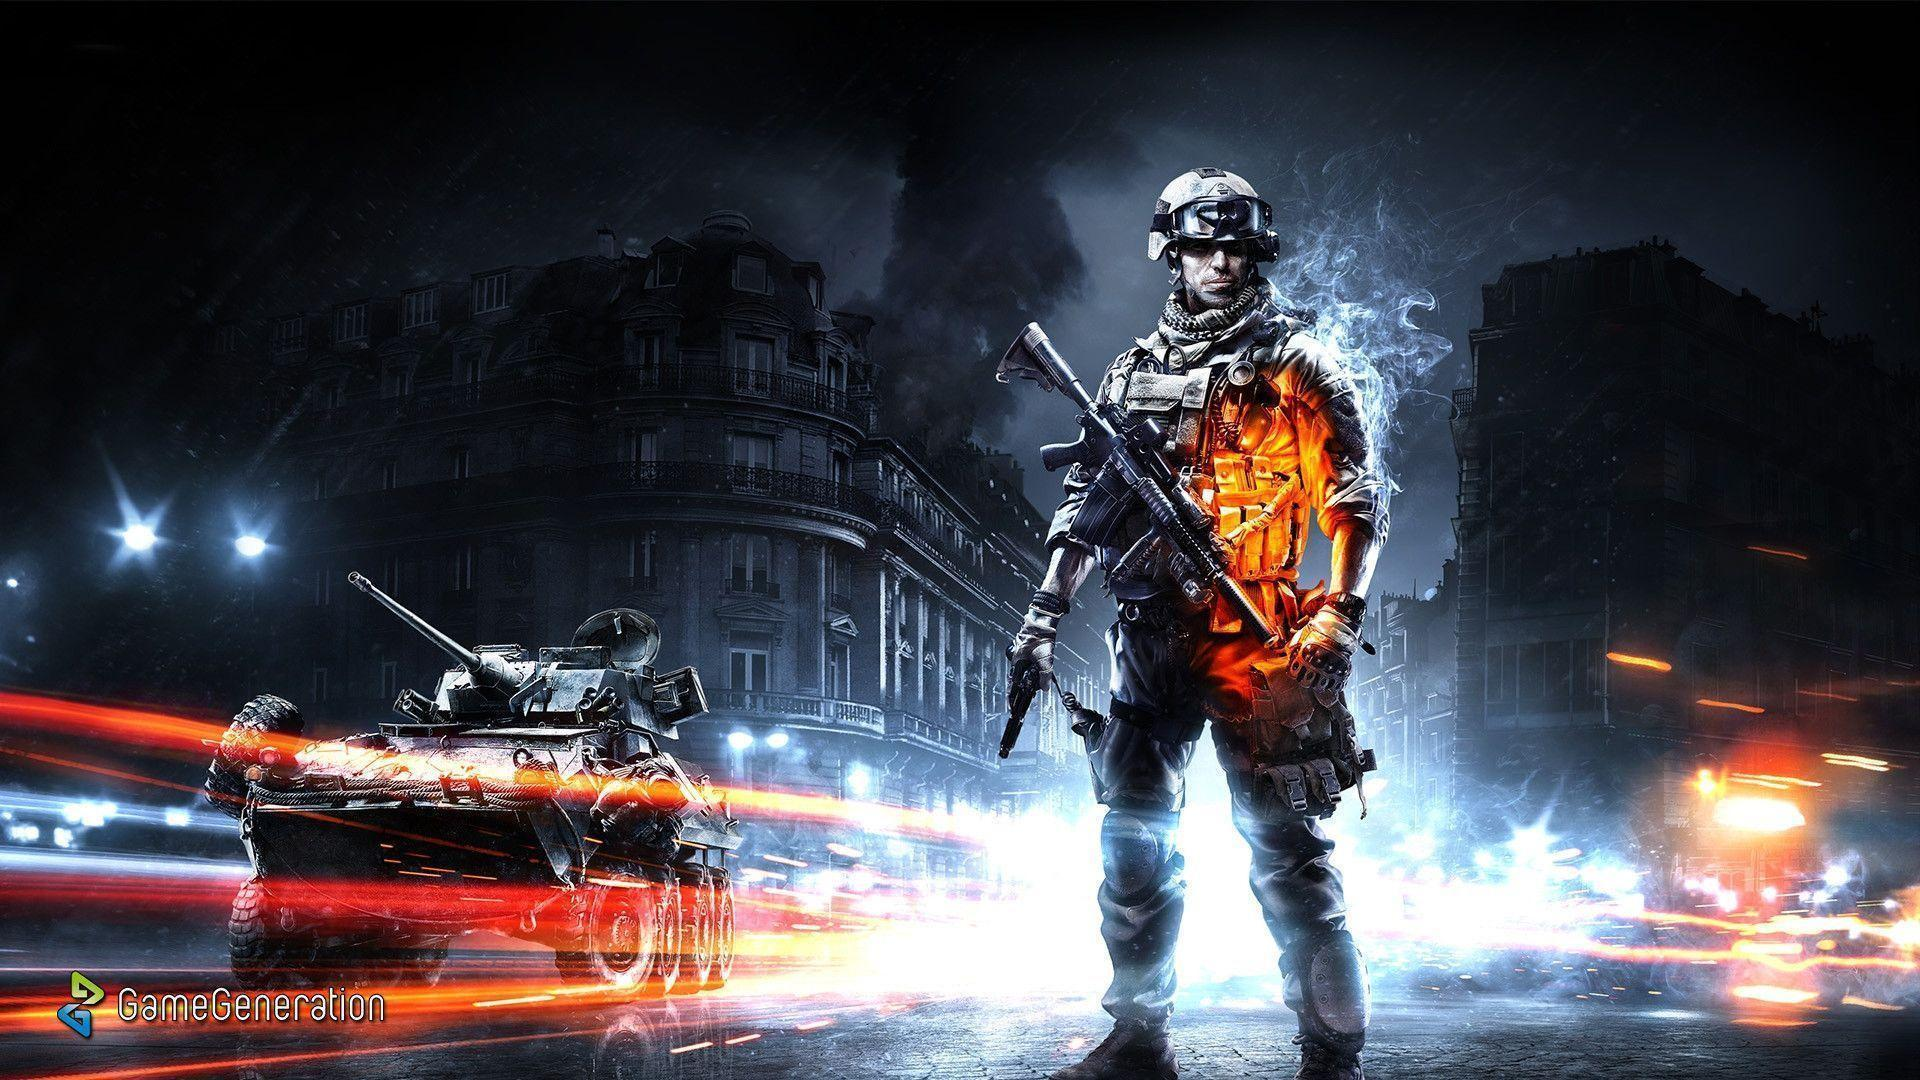 Playstation 3 Battlefield 3 Themes